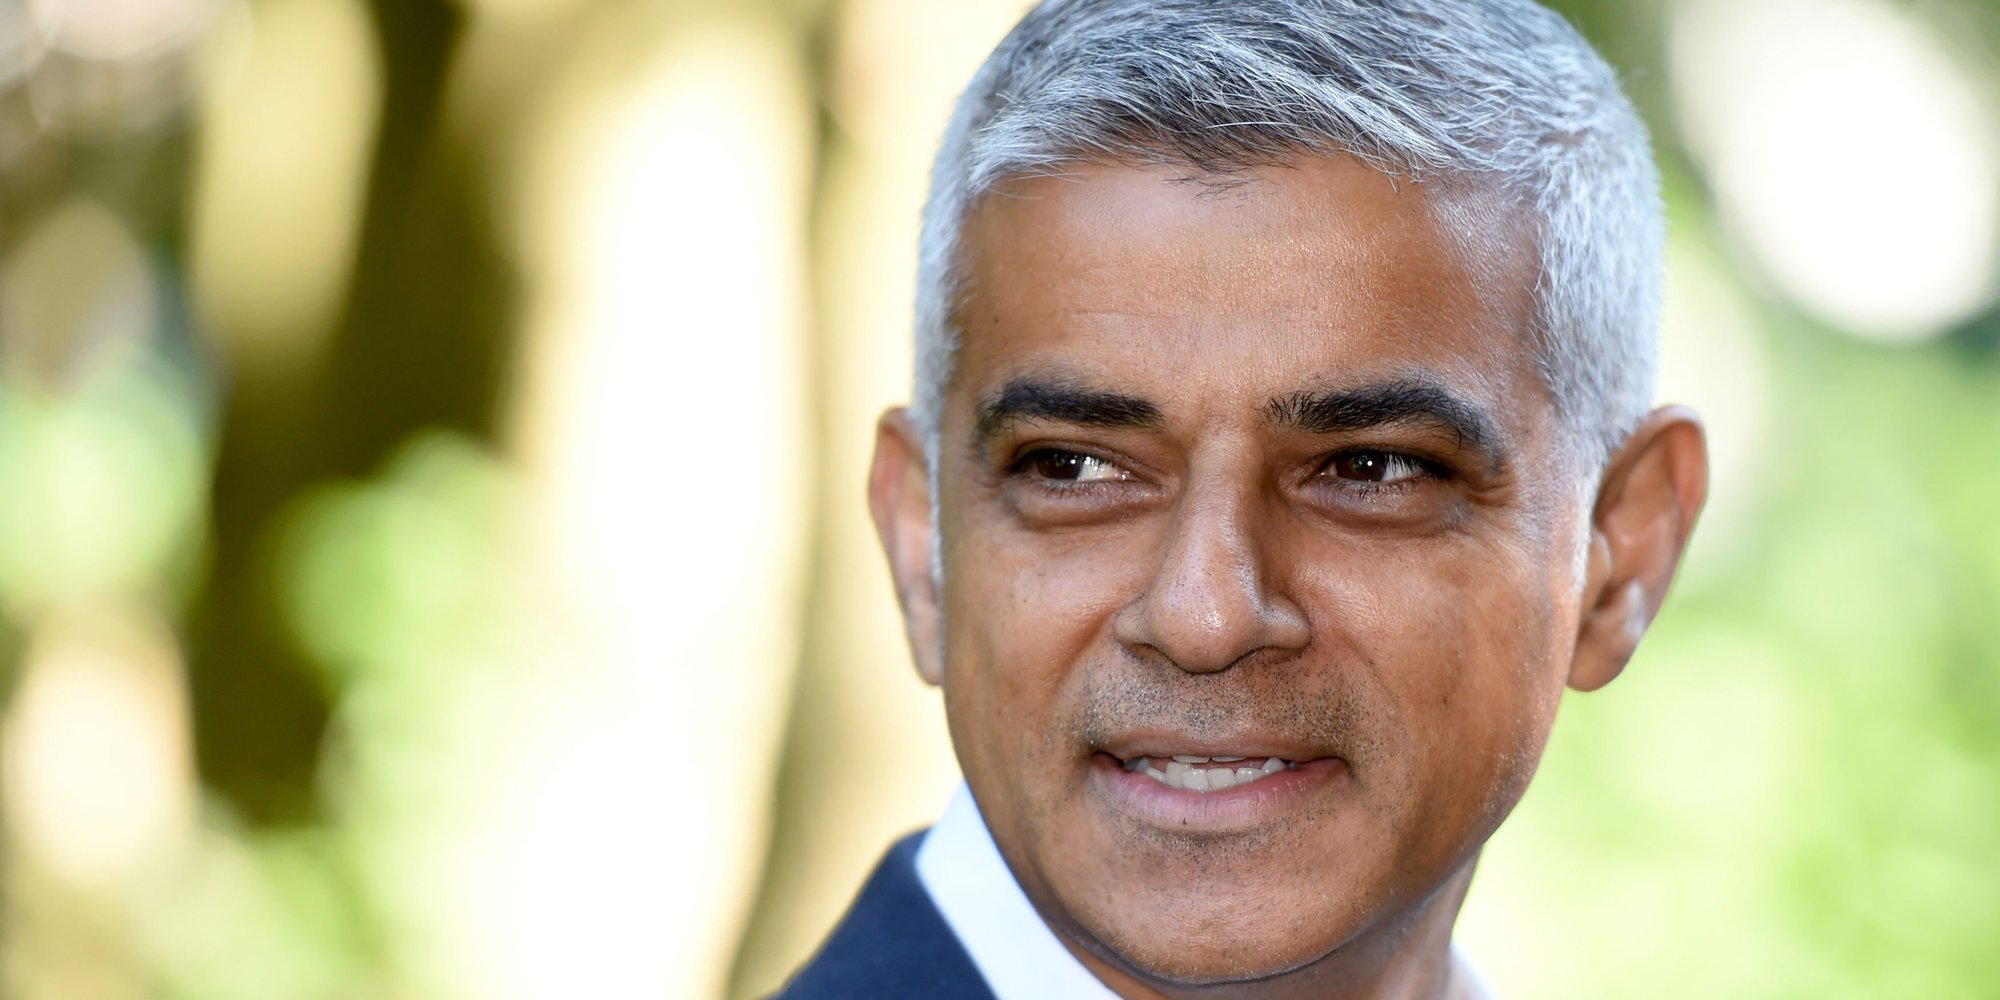 Sadiq Khan Wants Broadcasters To Provide Pollution Forecasts To Help Tackle Toxic Air https://t.co/QGs0eBRWYX https://t.co/pGXwhFegjS